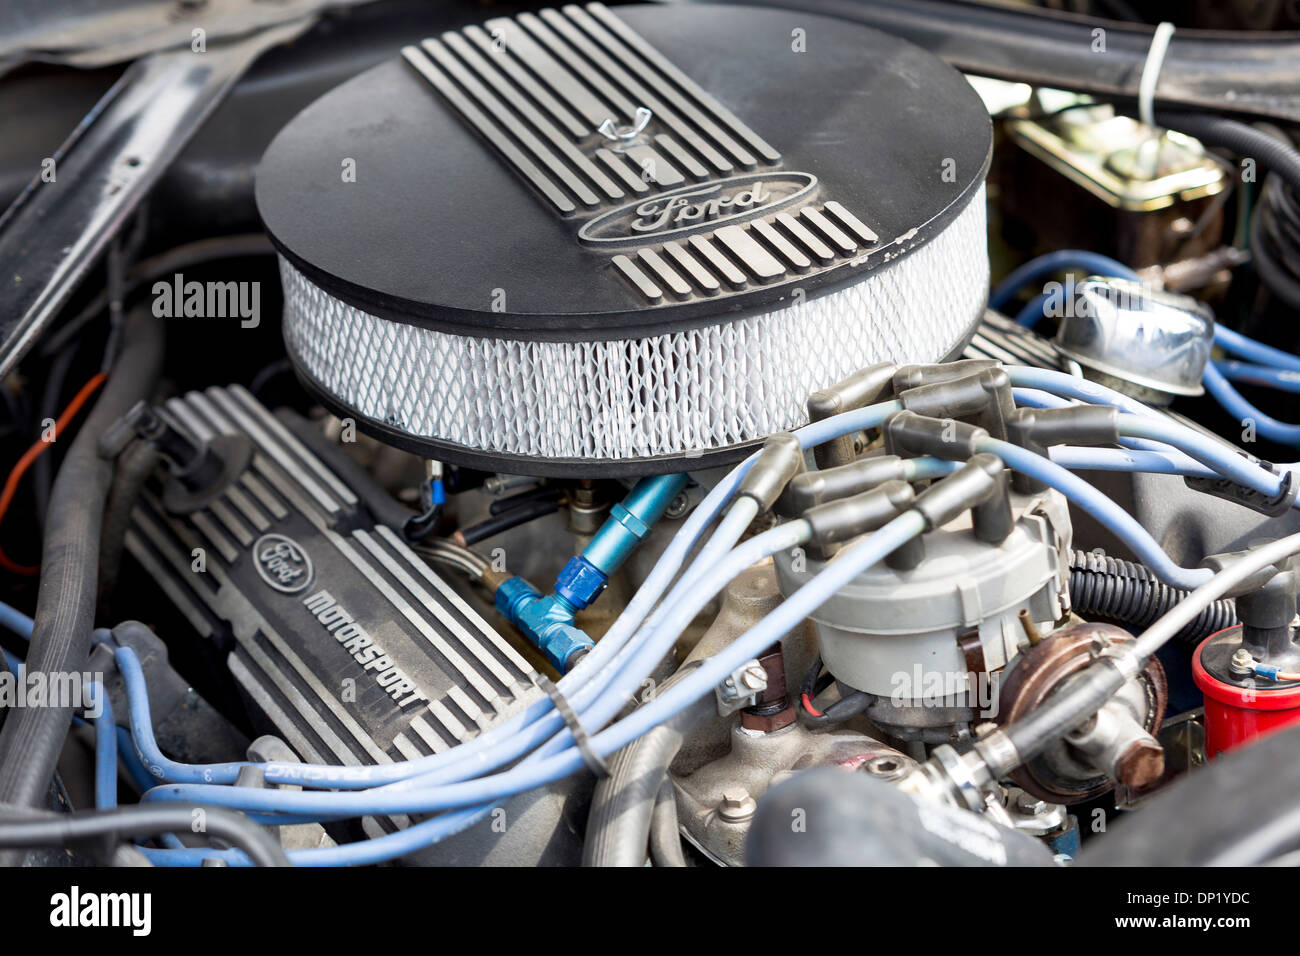 1968 Ford Mustang 302 Engine